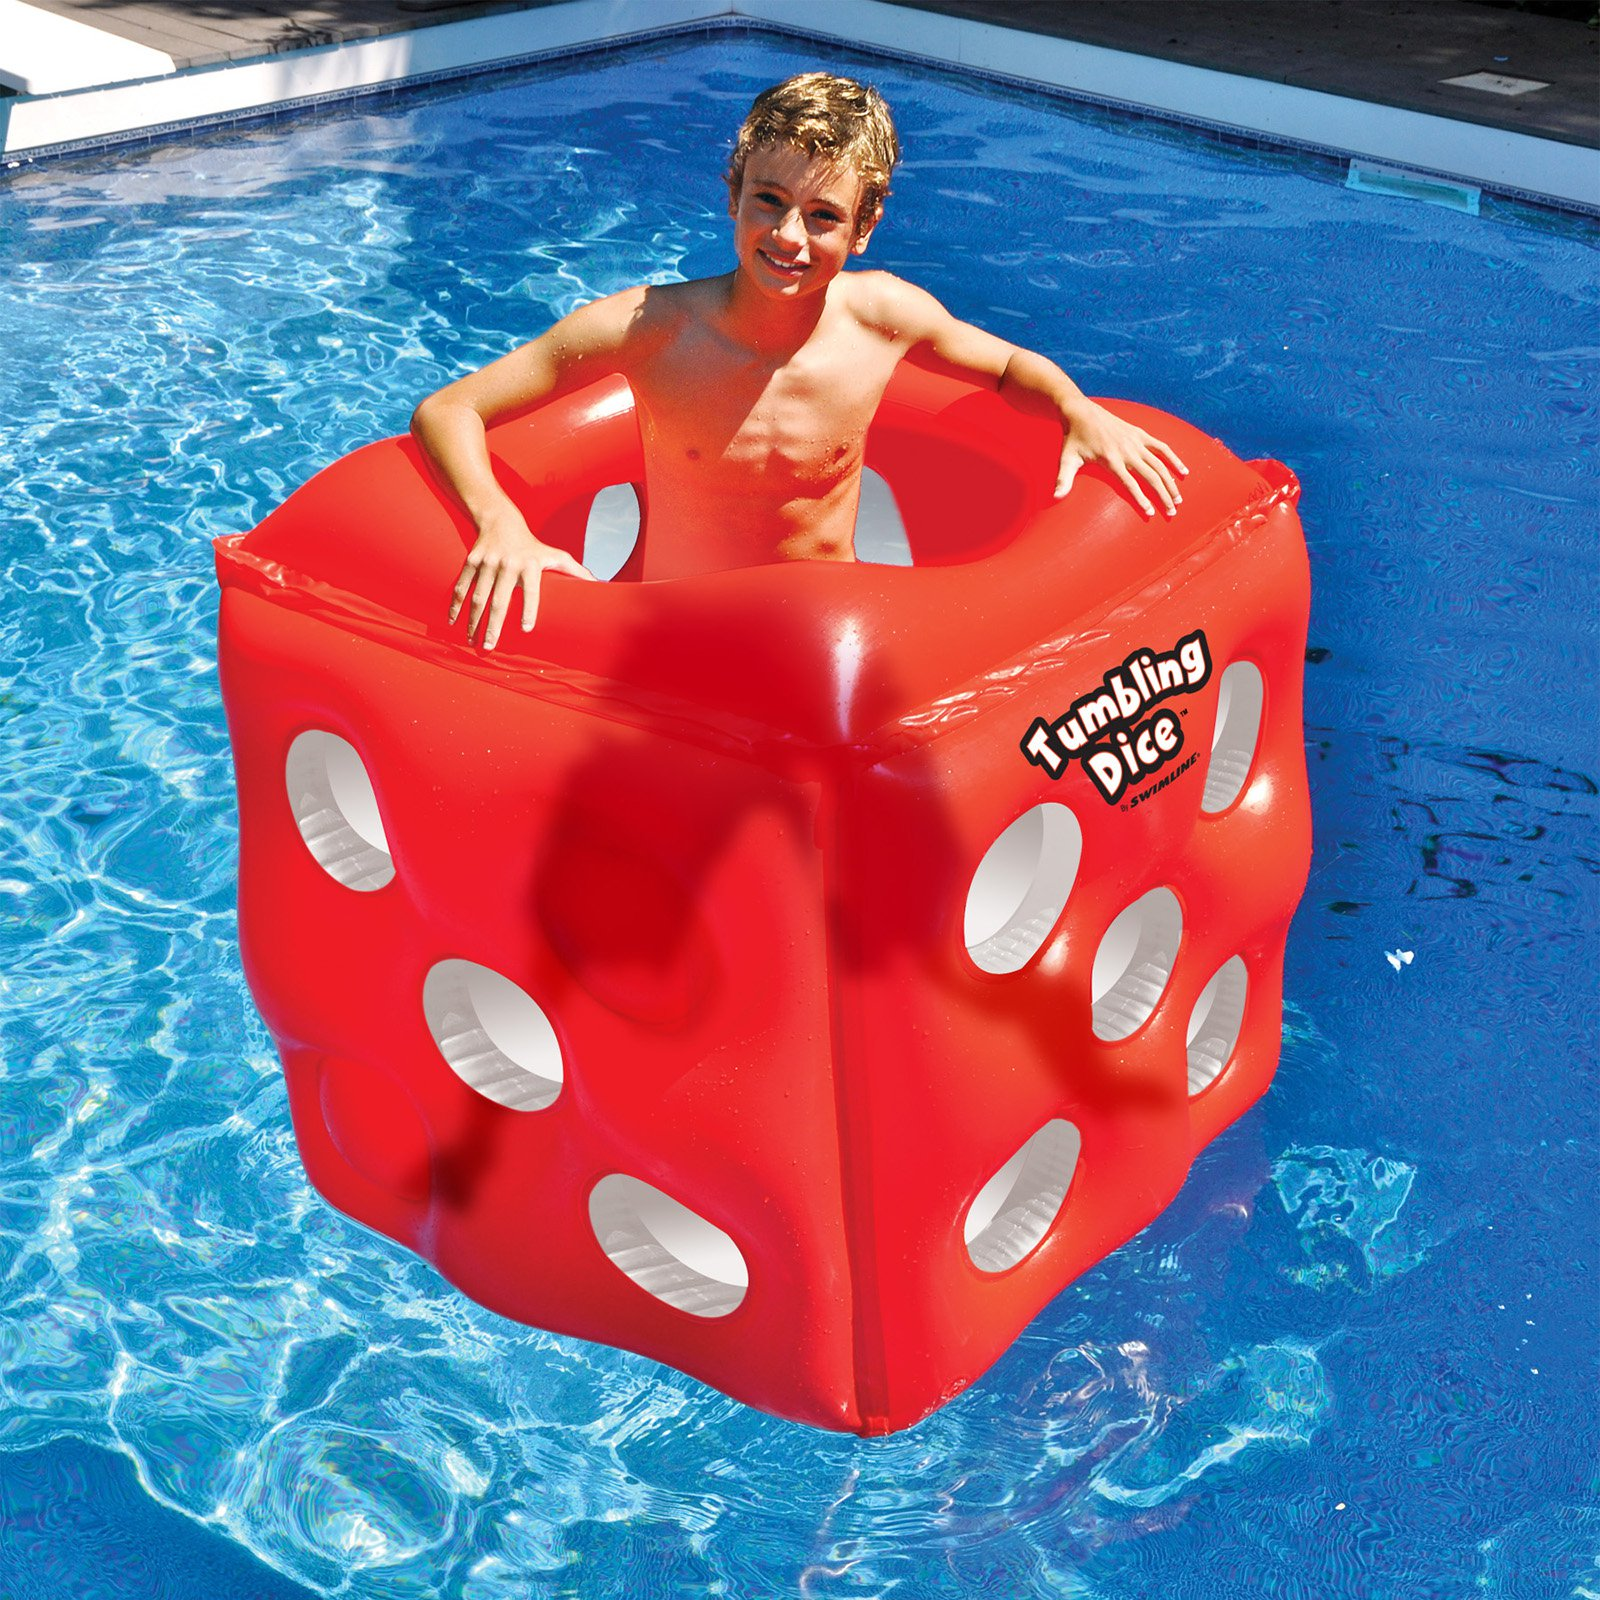 Swimline Tumbling Dice Inflatable Pool Toy for Swimming Pools